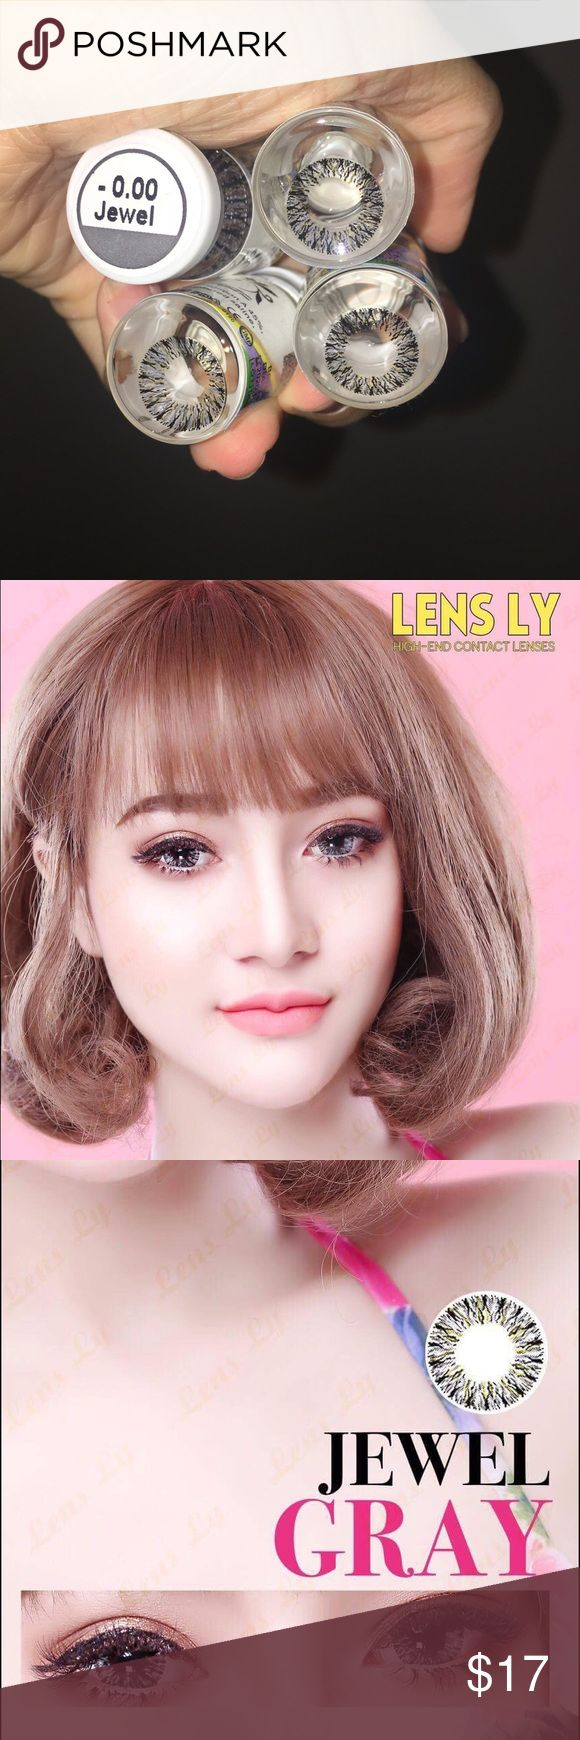 Gray Non prescription color contact lens Jewel gray. DIA: 14.0 . Case , mirror included. Made in Korea bella  Makeup